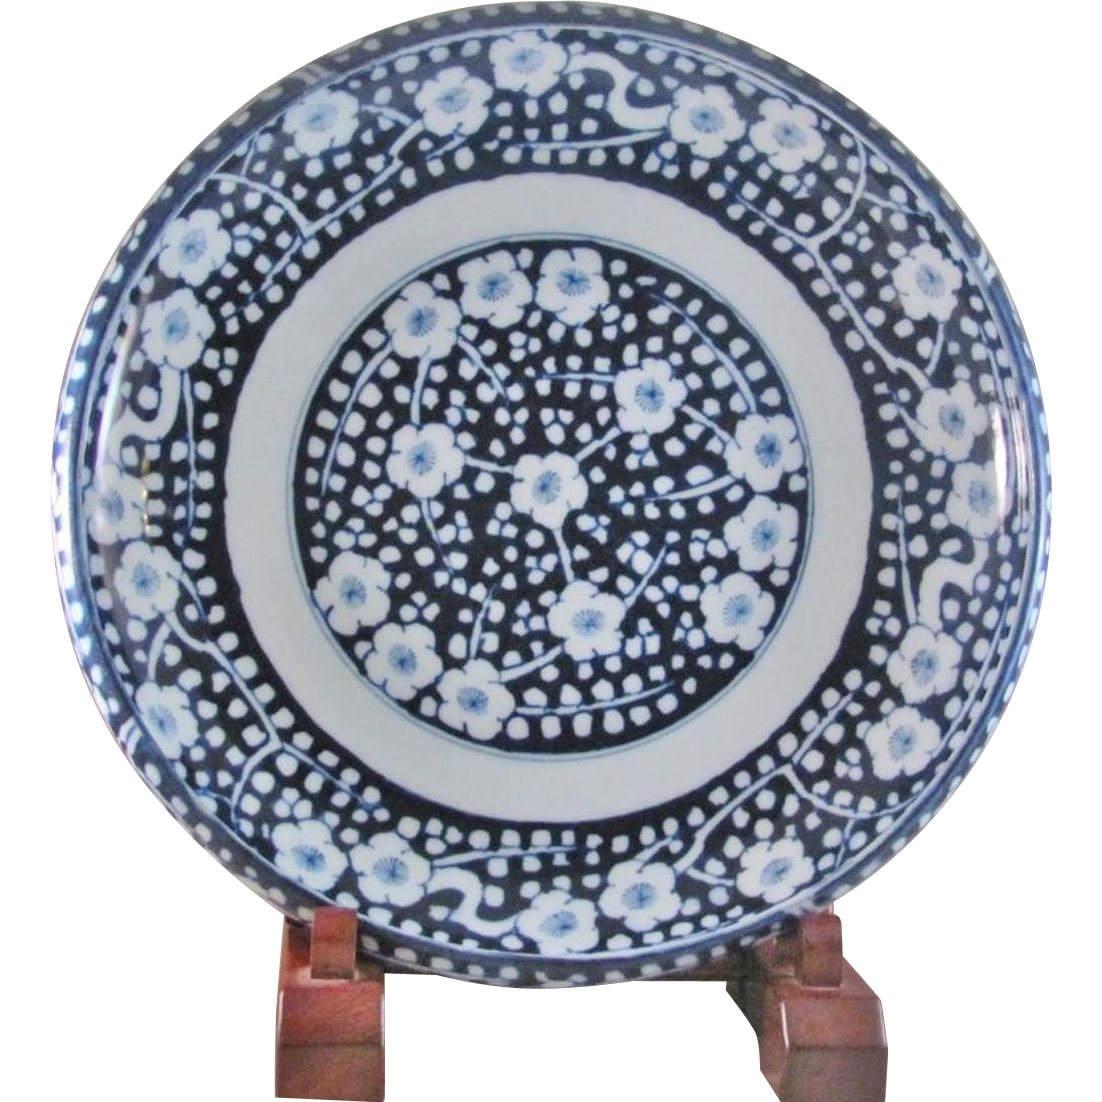 Japanese Antique Hizen ko- Imari Rare Huge Porcelain Platter by the Great Aoki 青 Family; Found at the @ManyFacesofJapan at @smeredith2504 on #RubyLane,